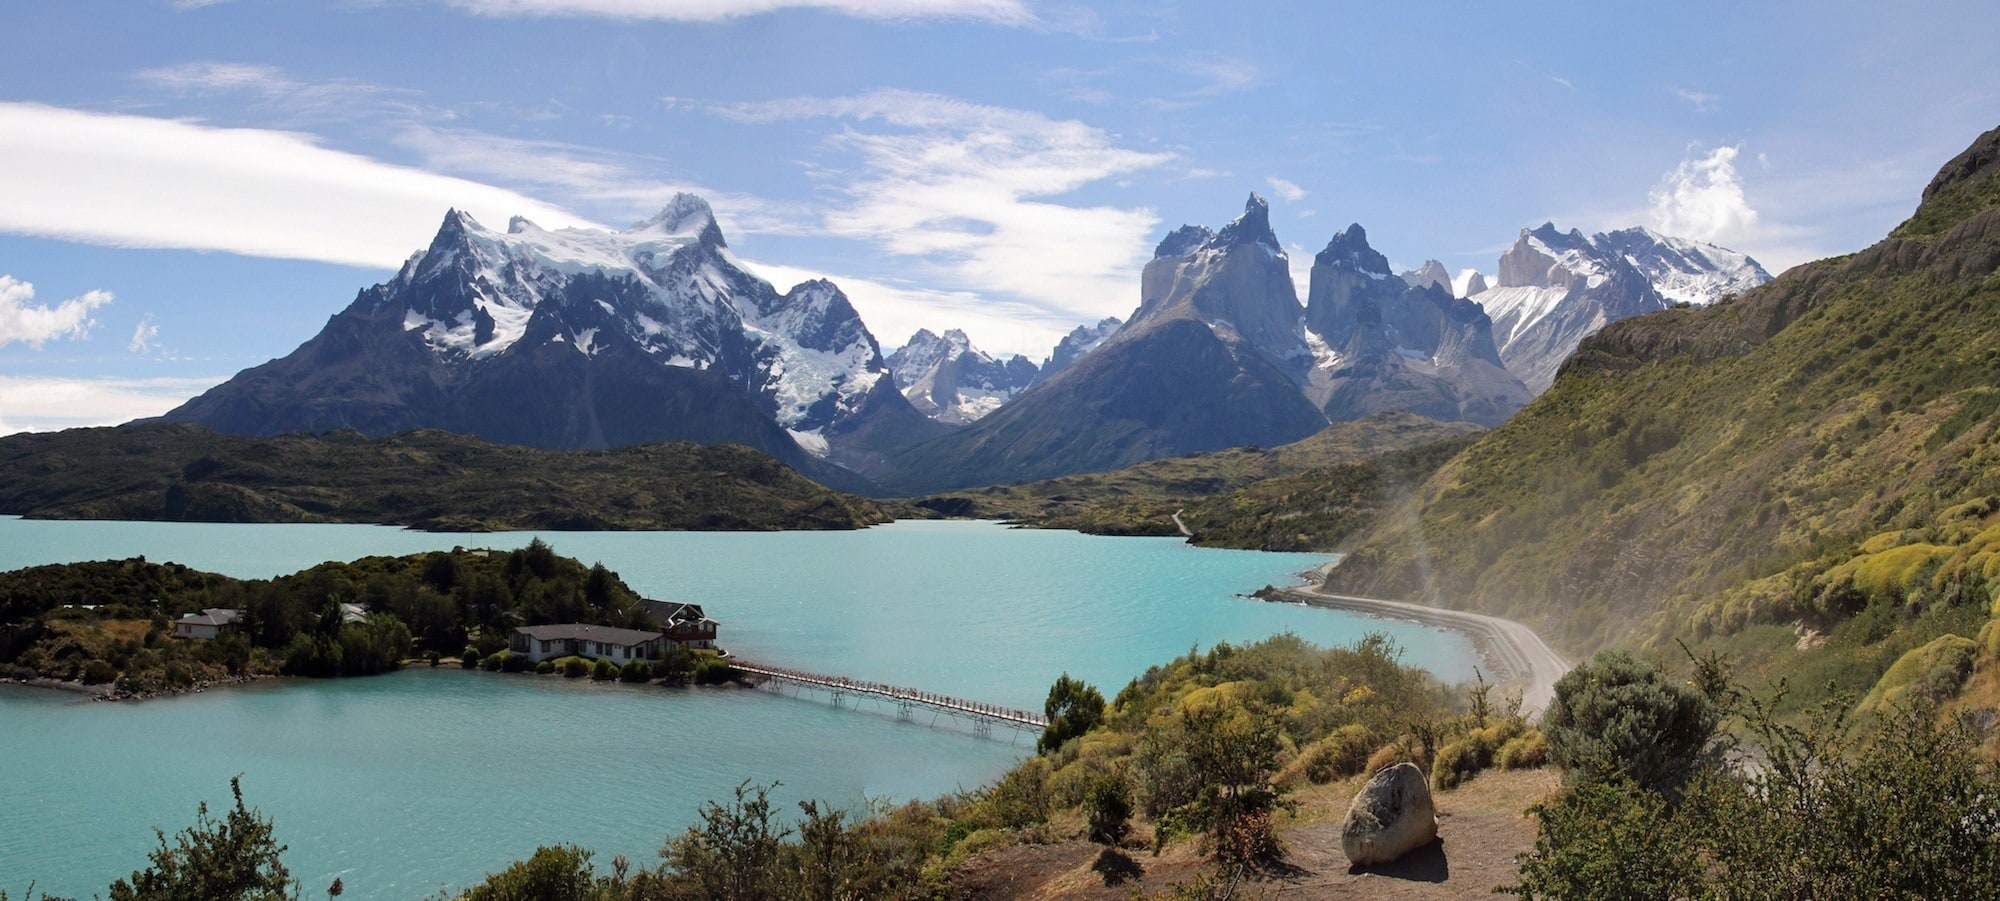 Chilean Patagonia & Torres Del Paine // the most famous region in Patagonia